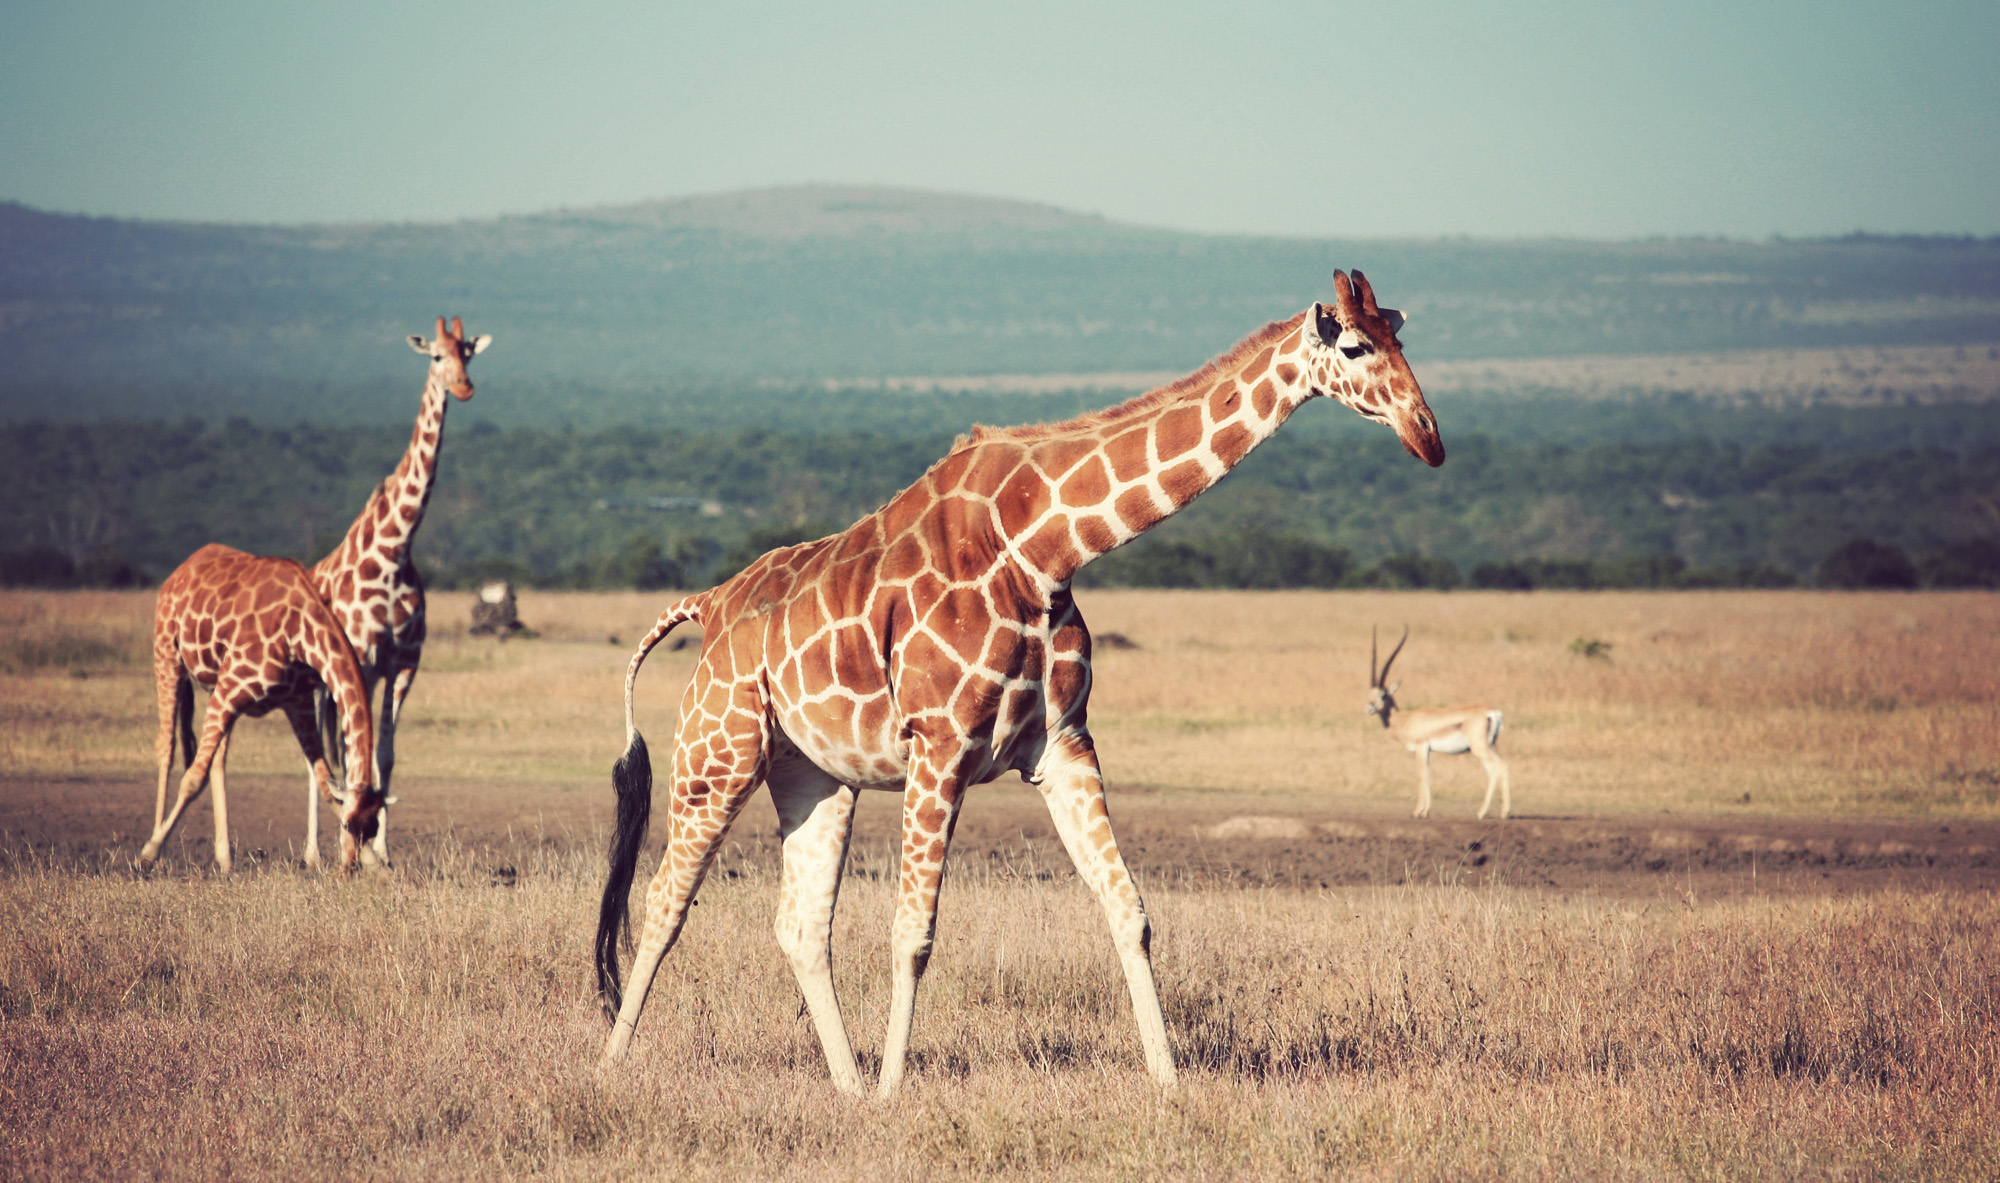 Day02_Sweetwater_Reticulated-Giraffes_05.jpg